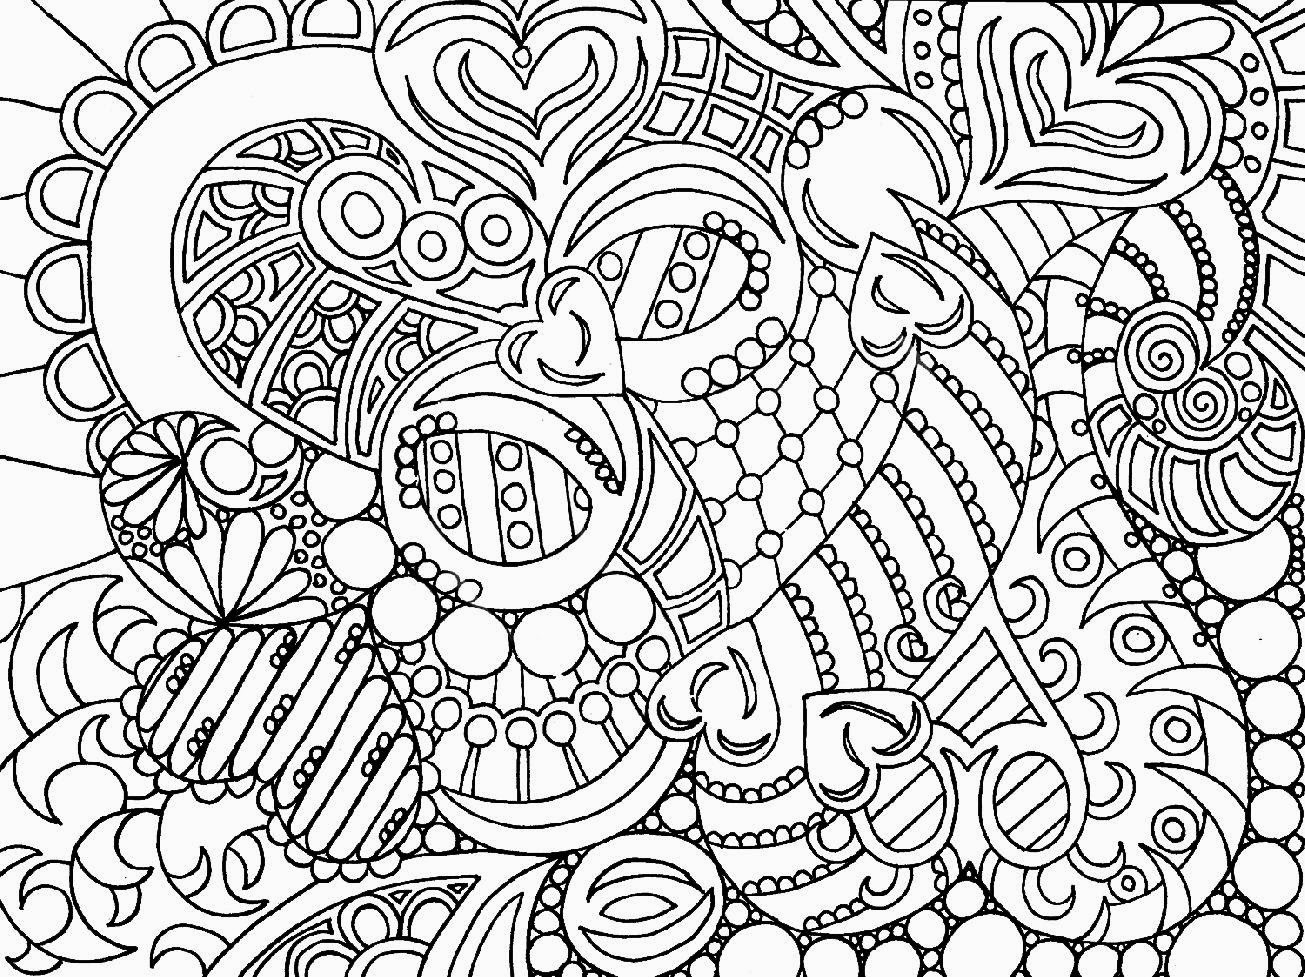 Adult Coloring Sheets Free Coloring Sheet